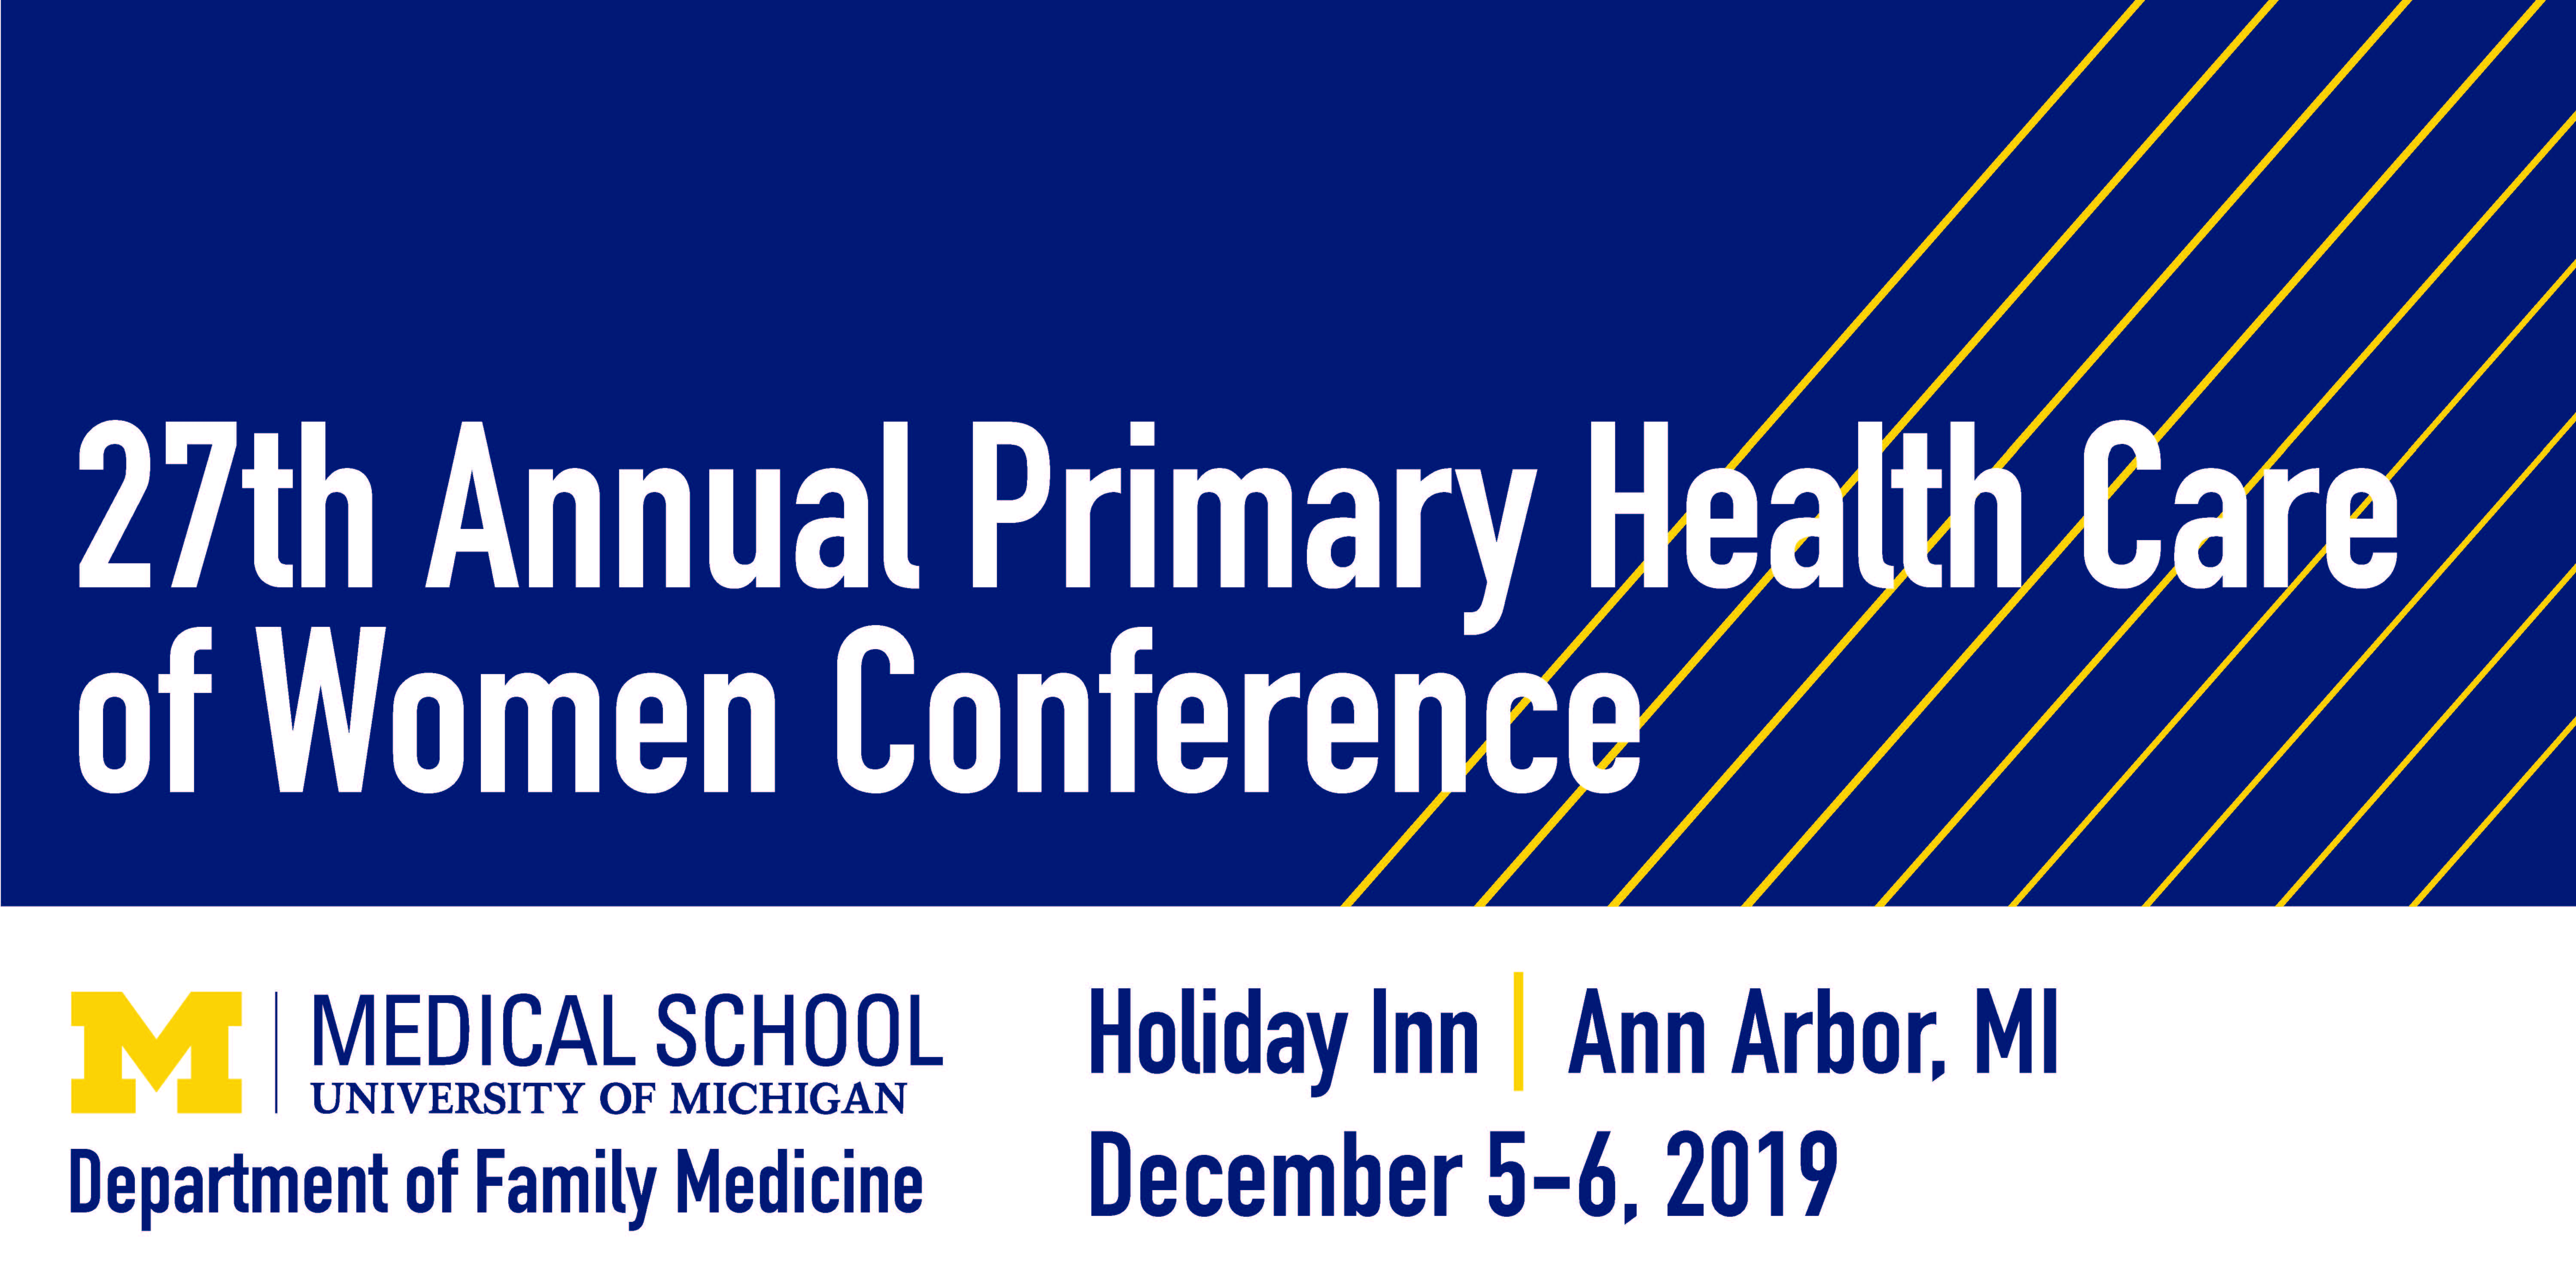 27th Annual Primary Health Care of Women Conference